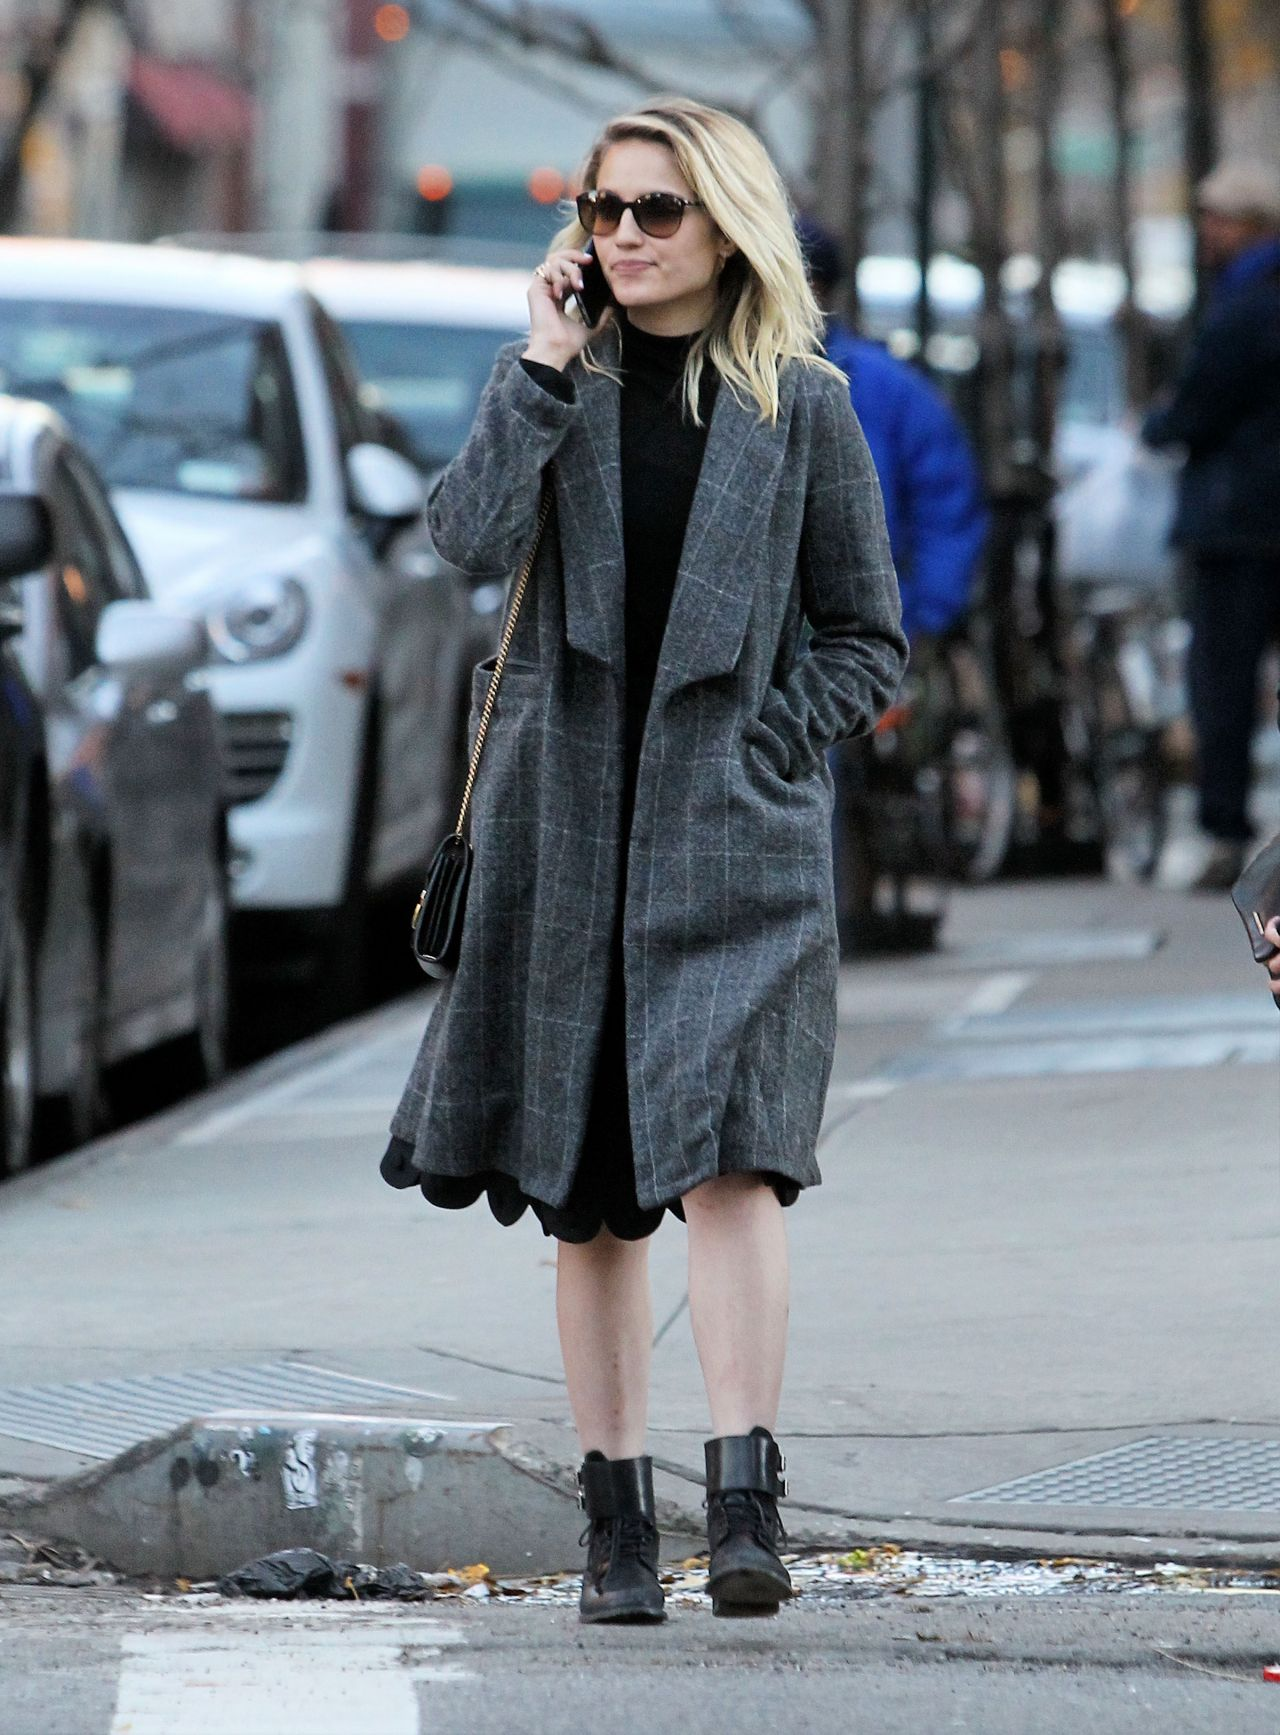 Brilliant Dianna Agron Autumn Style  Out In New York City 11202015